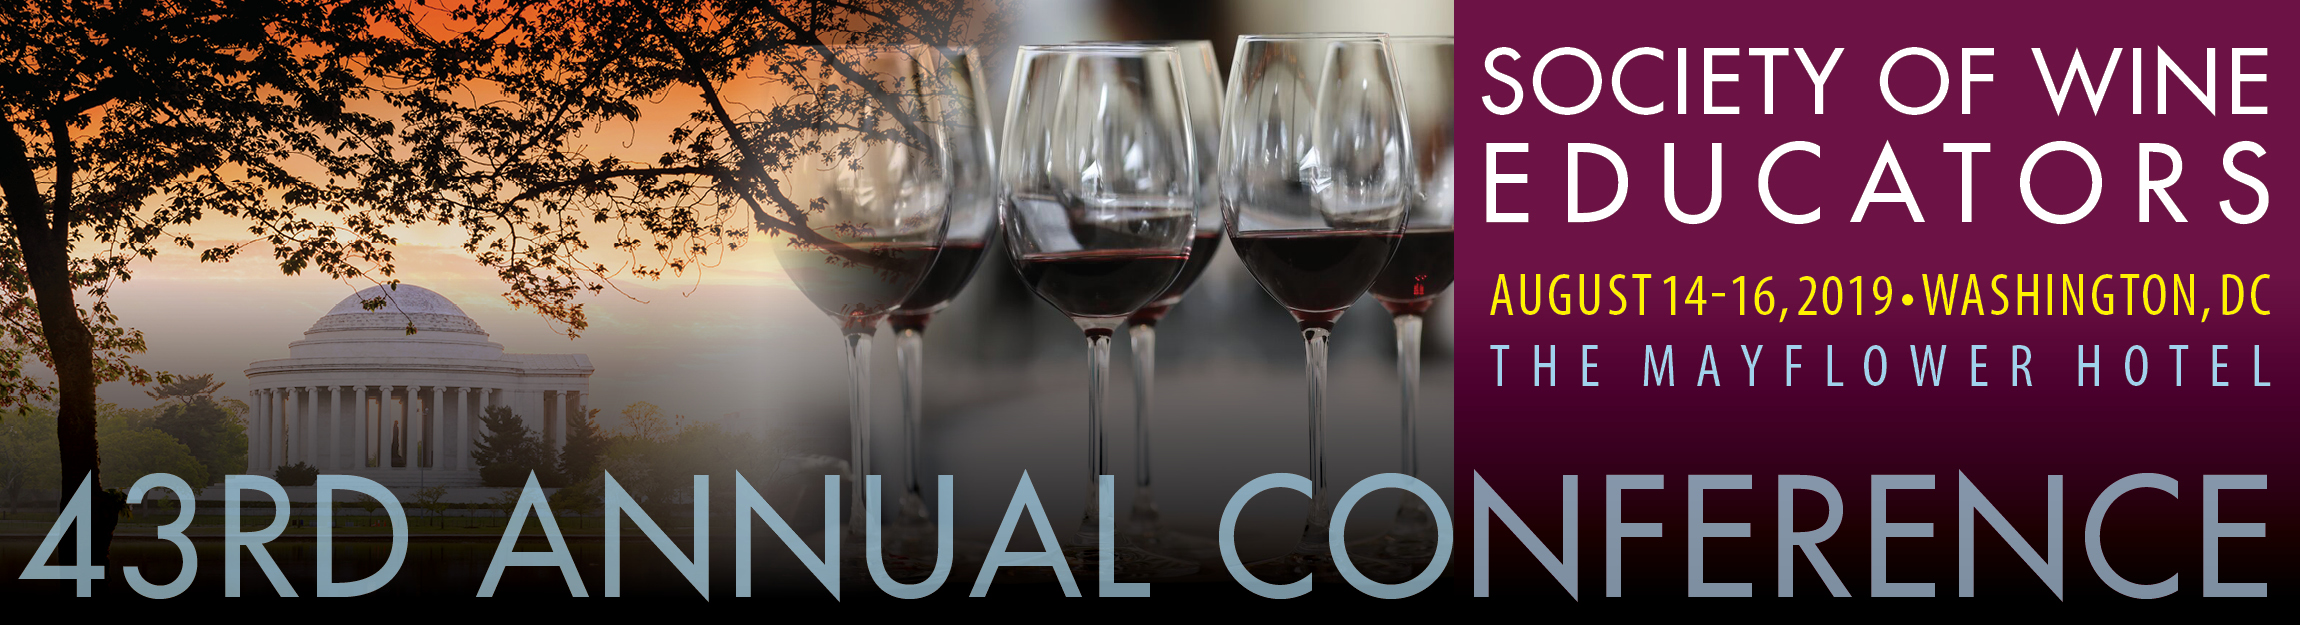 Society of Wine Educators 43rd Annual Conference